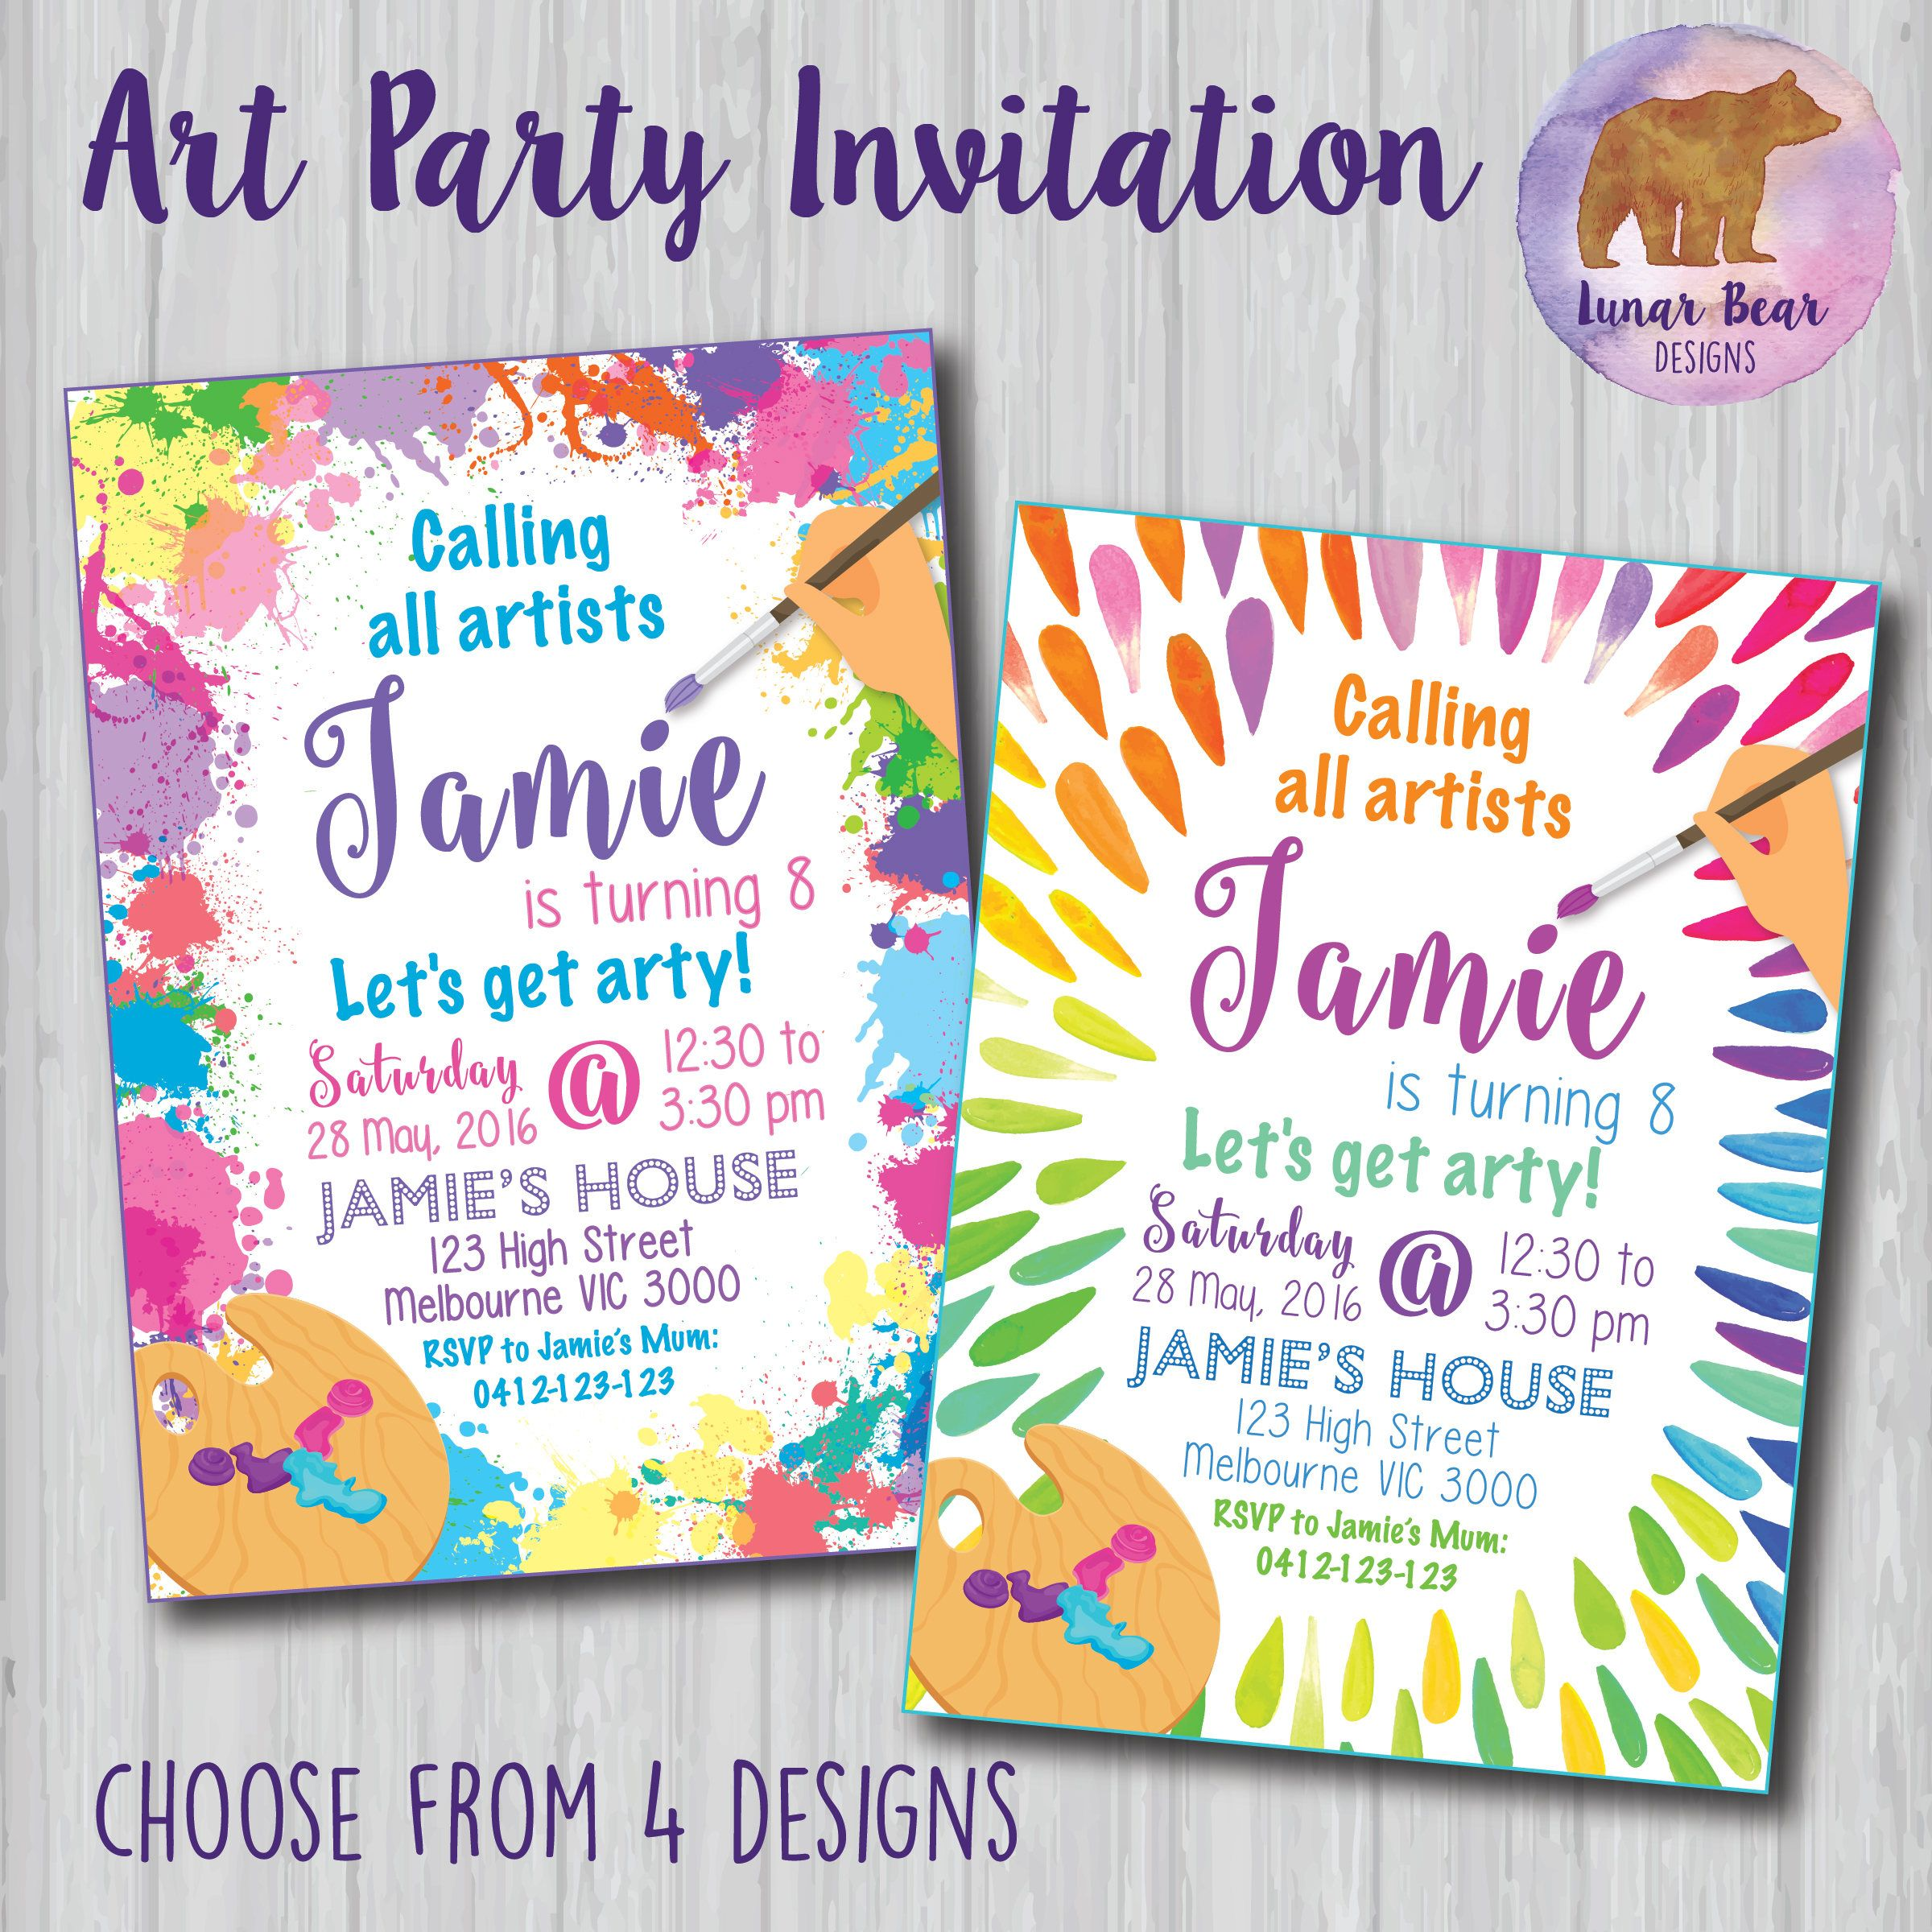 Art / Painting Party Invitation  * choose from 4 colourful, paint-splatter themed designs * perfect for art, painting or craft themed parties  * available in two sizes: 4x6 or 5x7 (custom sizes may be available upon request) * all text in the sample pictures can be changed if you prefer different wording  Please note that this listing is for a DIGITAL FILE that has been personalised with your invitation details. The file itself is NOT editable. You will be able to use the personalised fi...